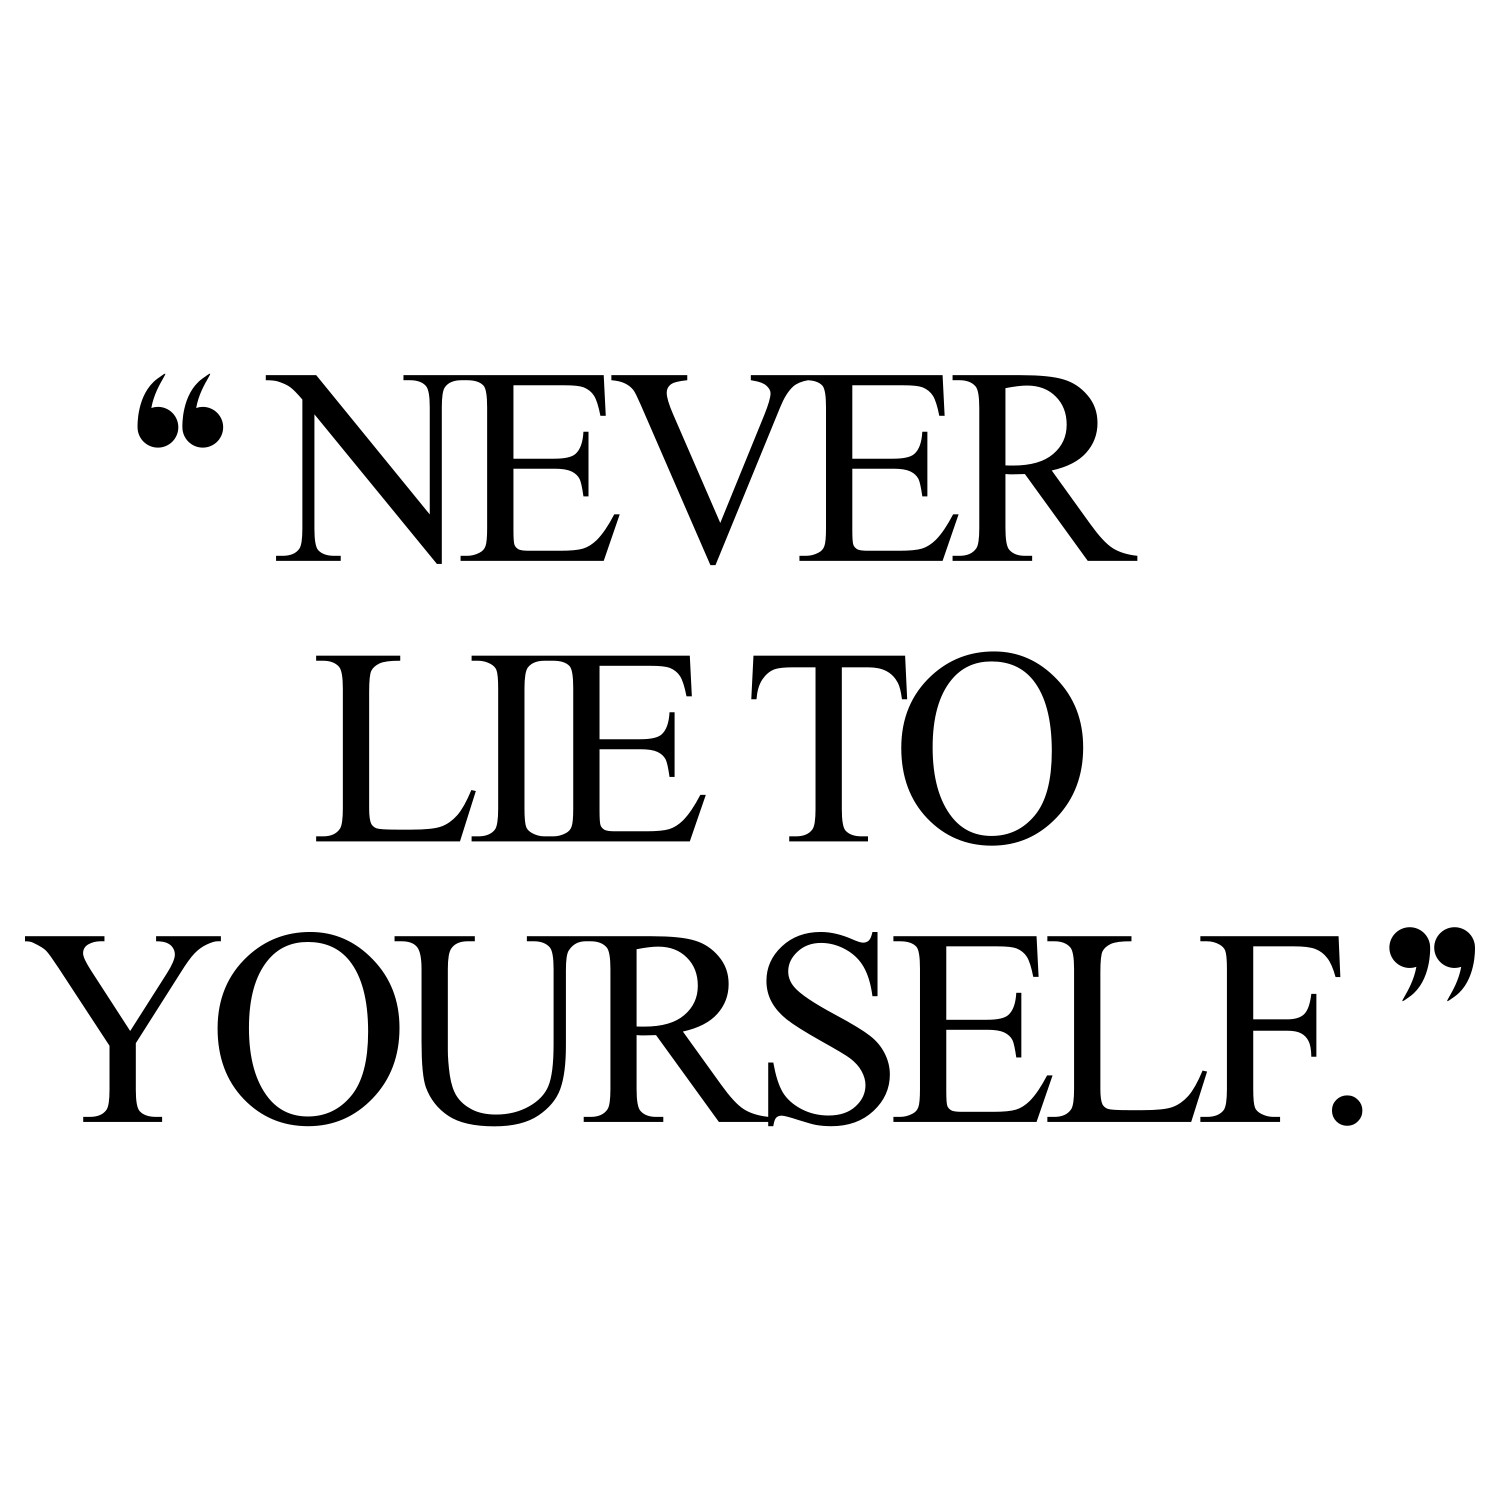 Never lie to yourself! Browse our collection of motivational exercise and fitness quotes and get instant healthy lifestyle inspiration. Stay focused and get fit, healthy and happy! https://www.spotebi.com/workout-motivation/never-lie-to-yourself/